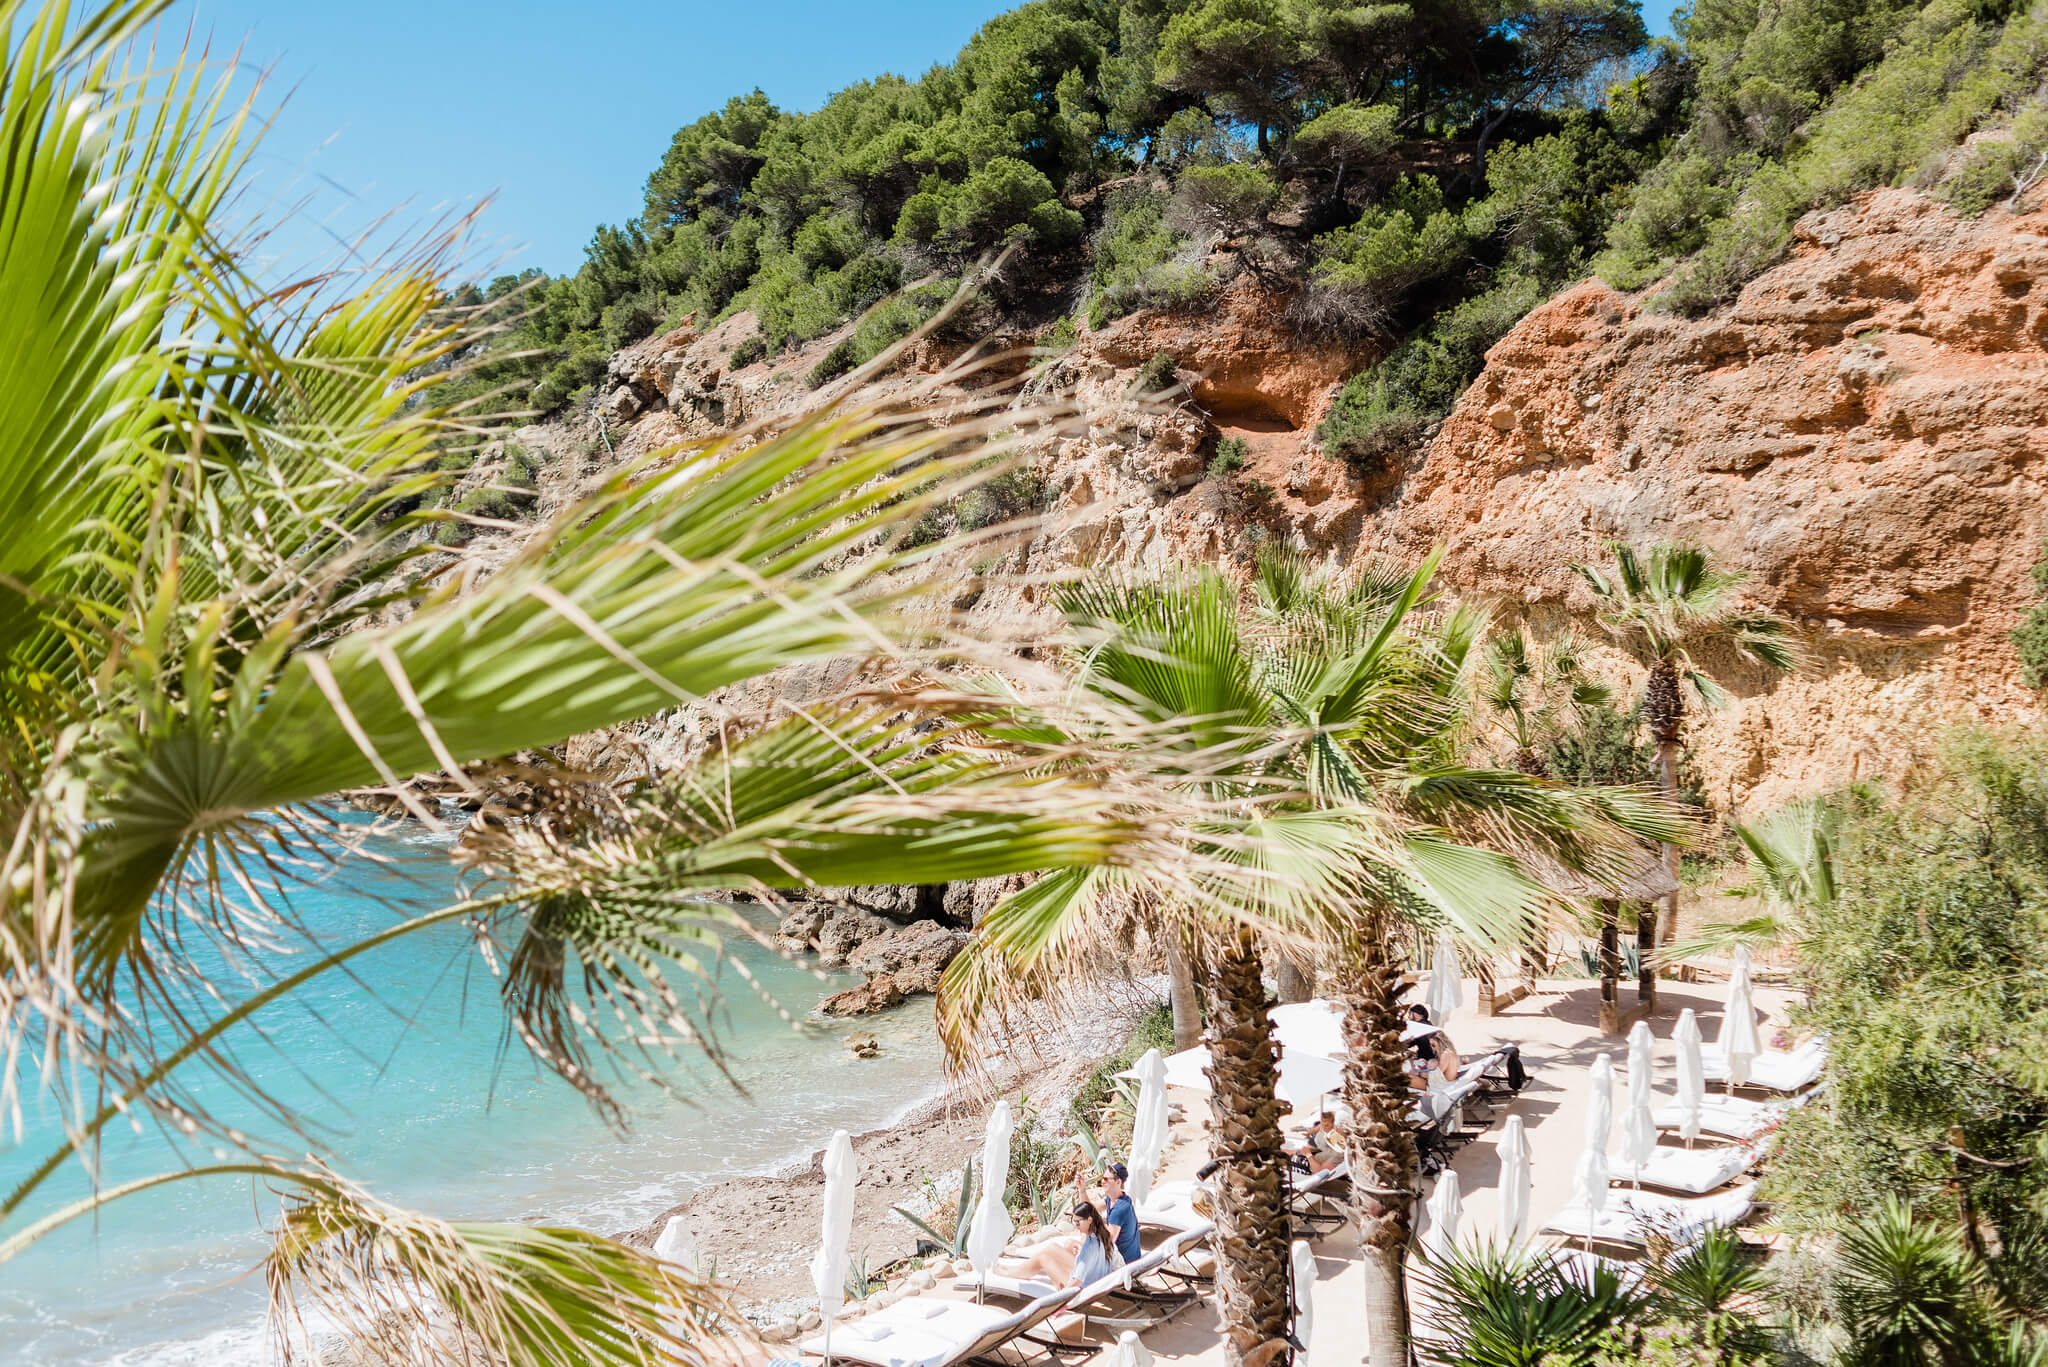 https://www.white-ibiza.com/wp-content/uploads/2020/03/ibiza-beaches-sol-den-serra-03.jpg